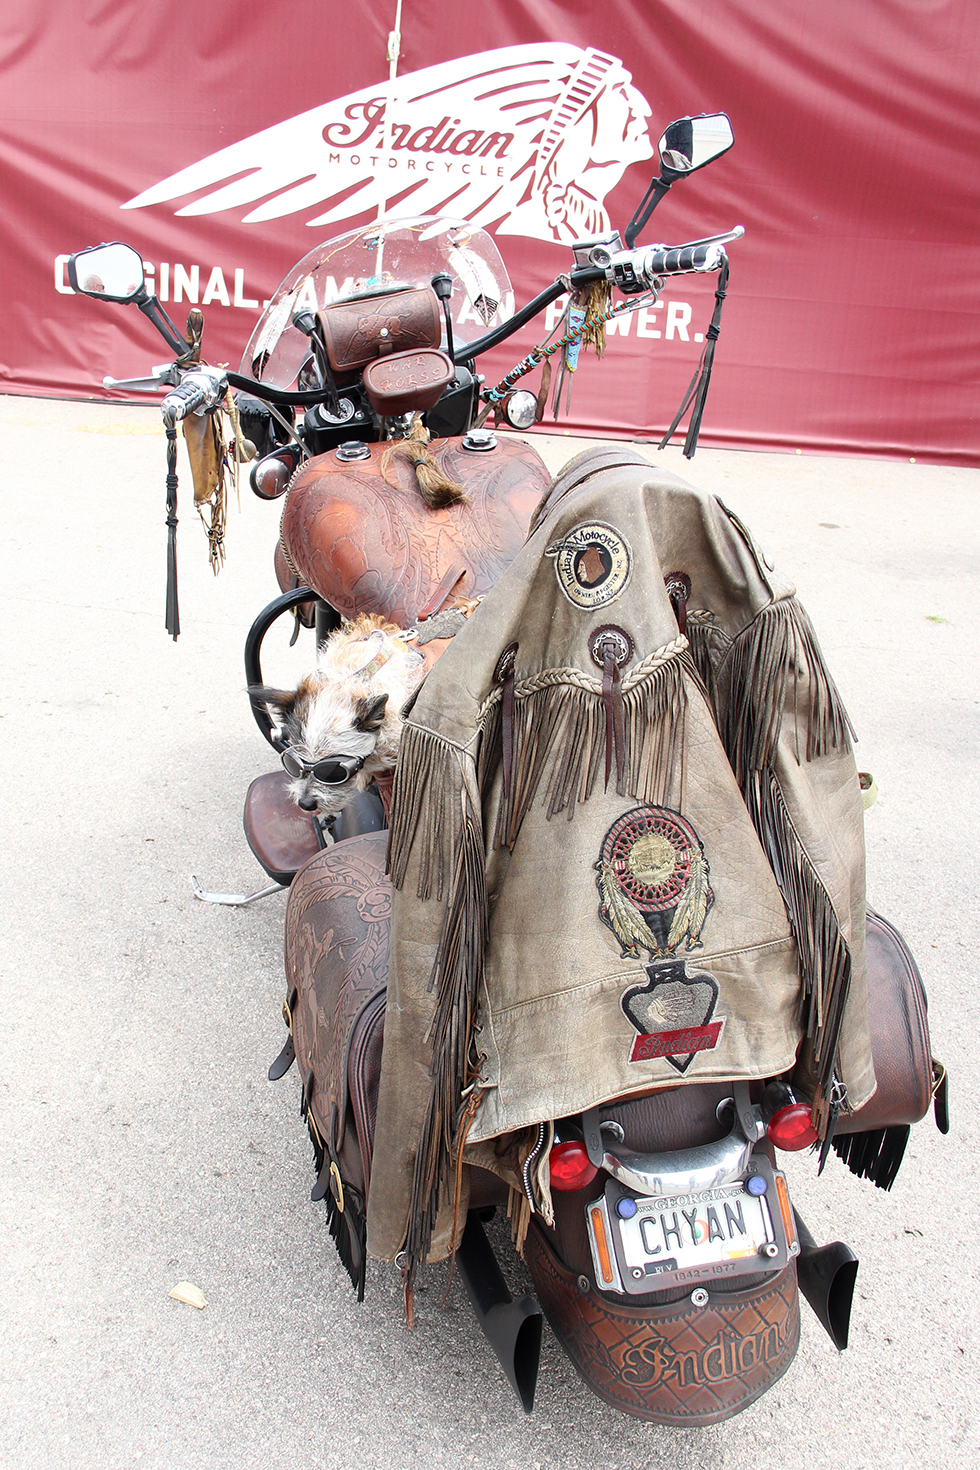 Hogs, Choppers, Indians, Harleys... | Sturgis, South Dakota